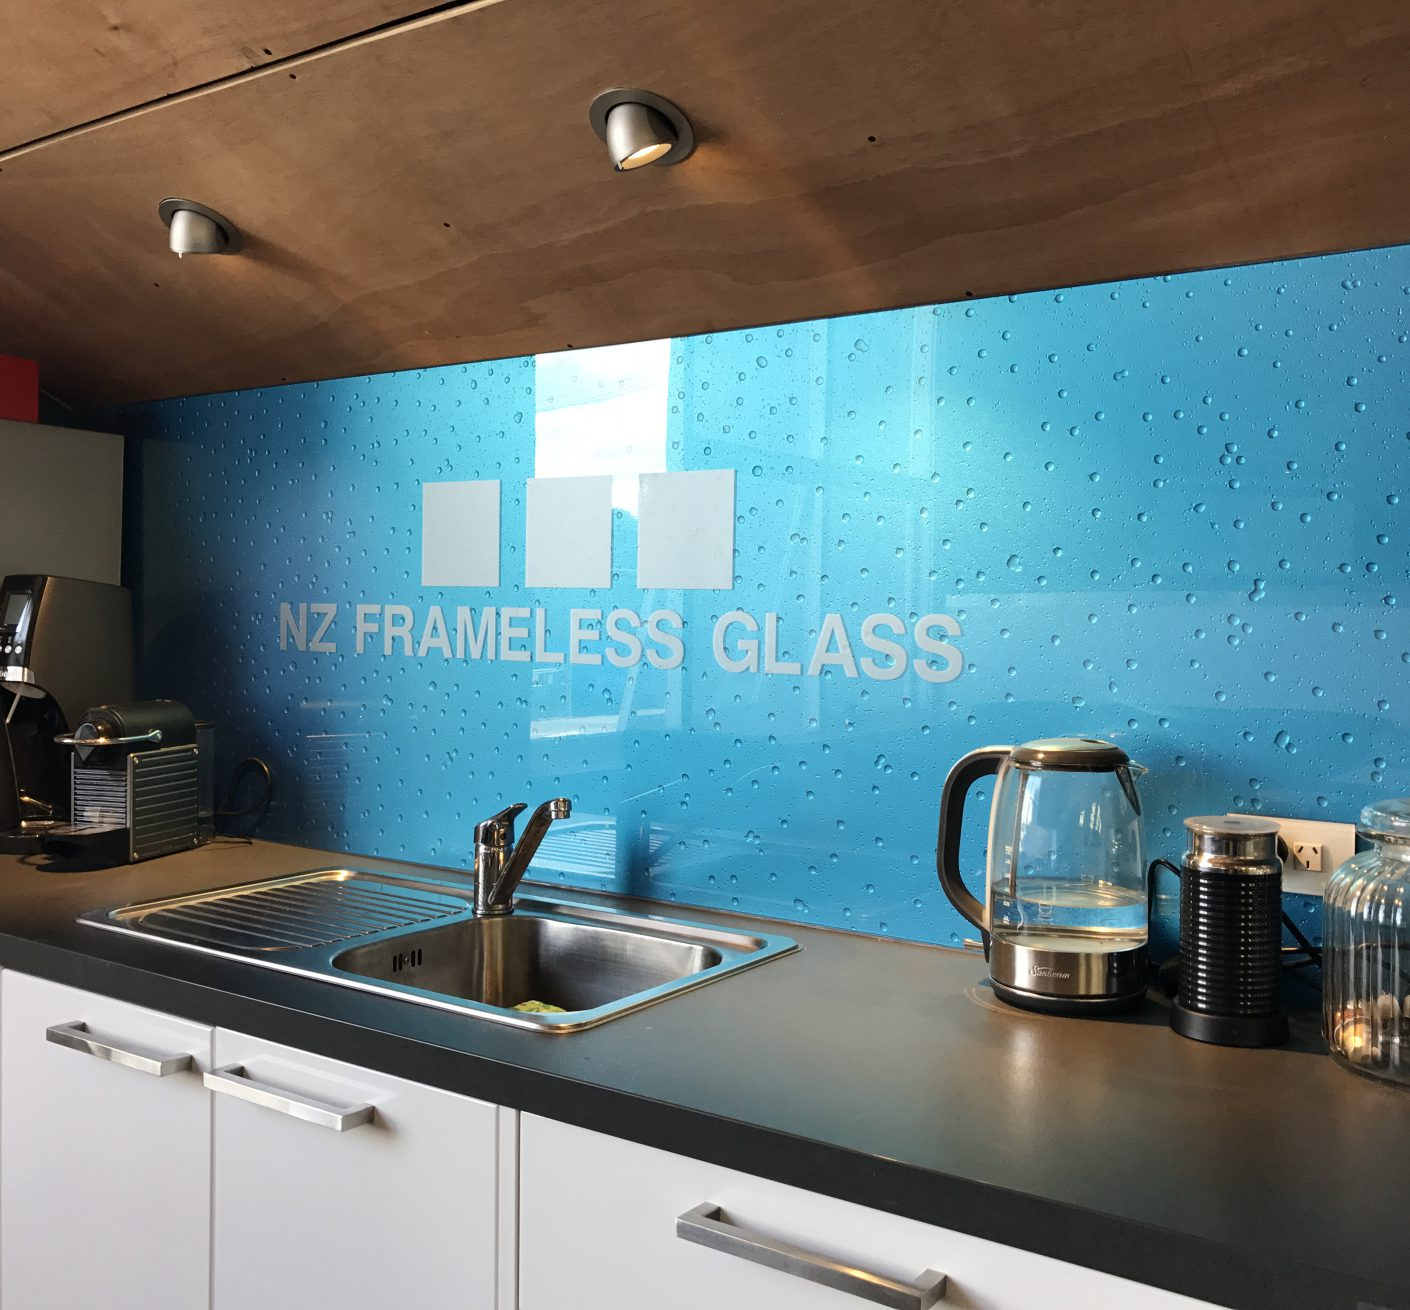 Safety Glass Splashbacks, NZ Frameless Glass South Island, NZ Frameless Glass, South Island, Metro Glass, Christchurch Glass, Prestige Glass, Canterbury Glass, Shower Glass, Showers, Balustrades, Frameless Glass, Stake Glass, Commercial Glass, Christchurch Glass